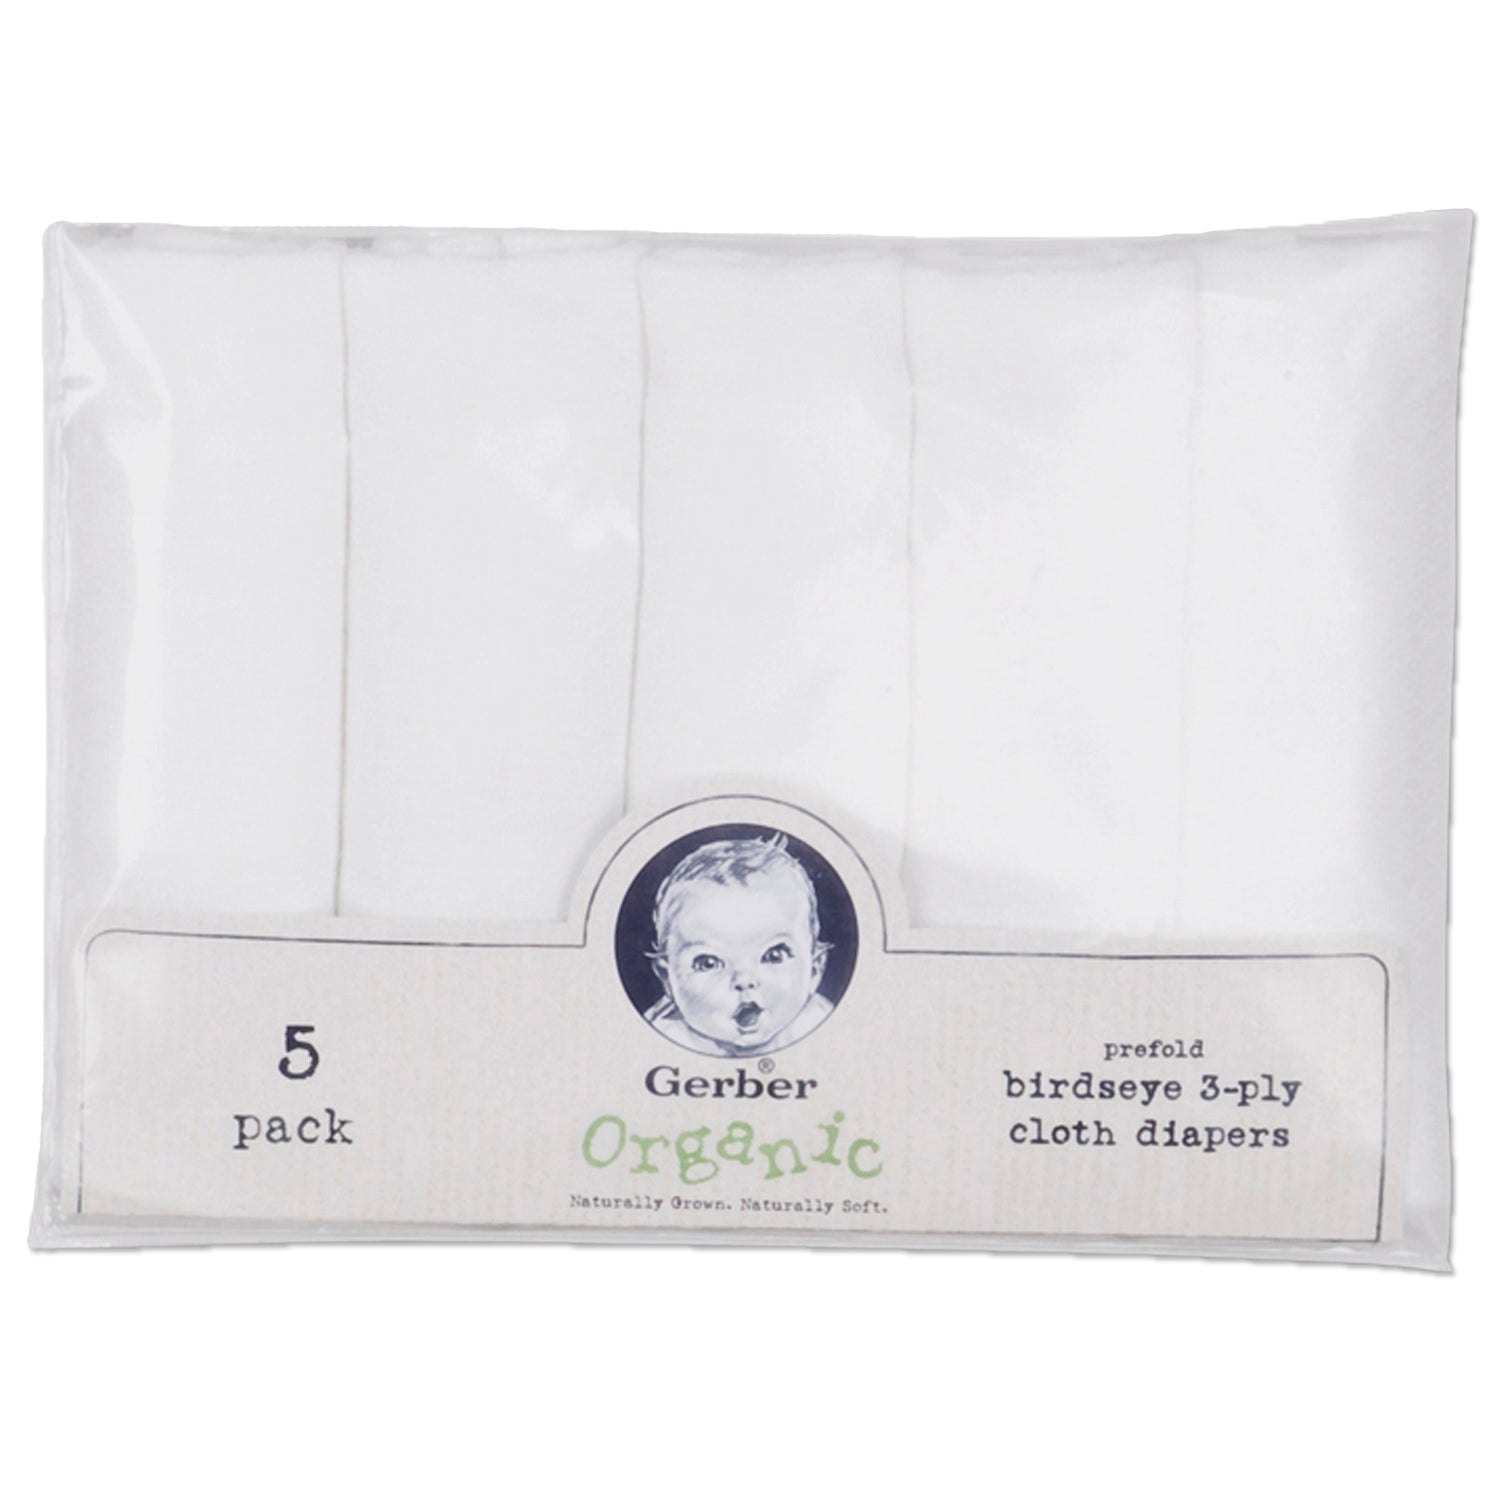 5-Pack White Prefold Birdseye Organic Cloth Diapers-Gerber Childrenswear Wholesale